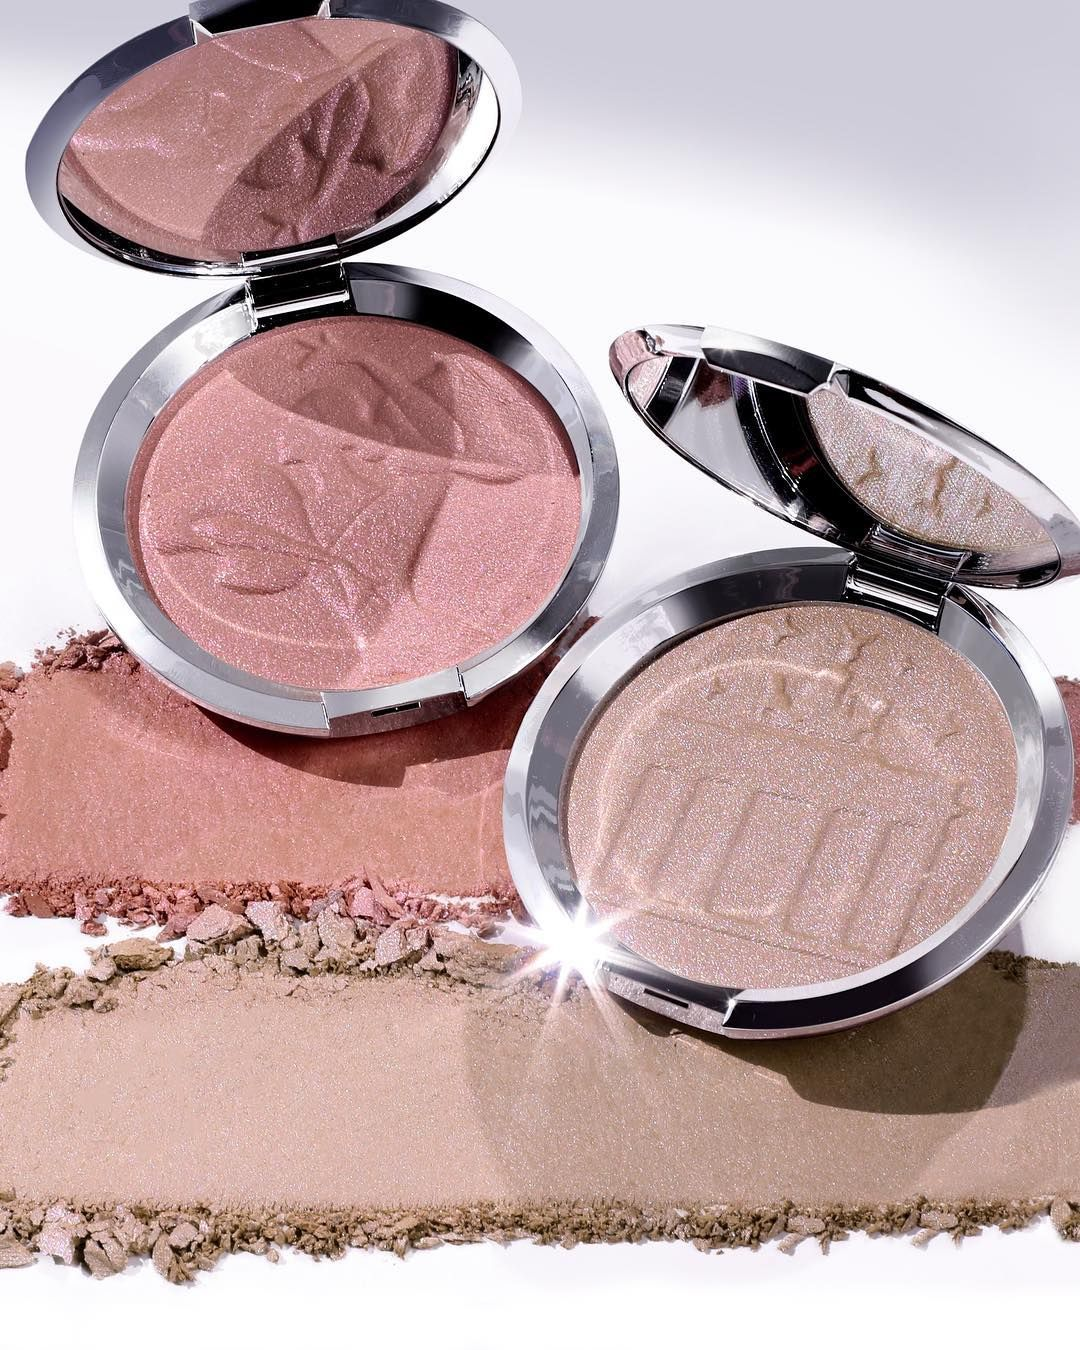 Becca X Hatice Shimmering Skin Perfector Pressed Highlighter Berlin Girl Glow Fashion And Makeup Becca Cosmetics Makeup Cosmetics Gorgeous Makeup